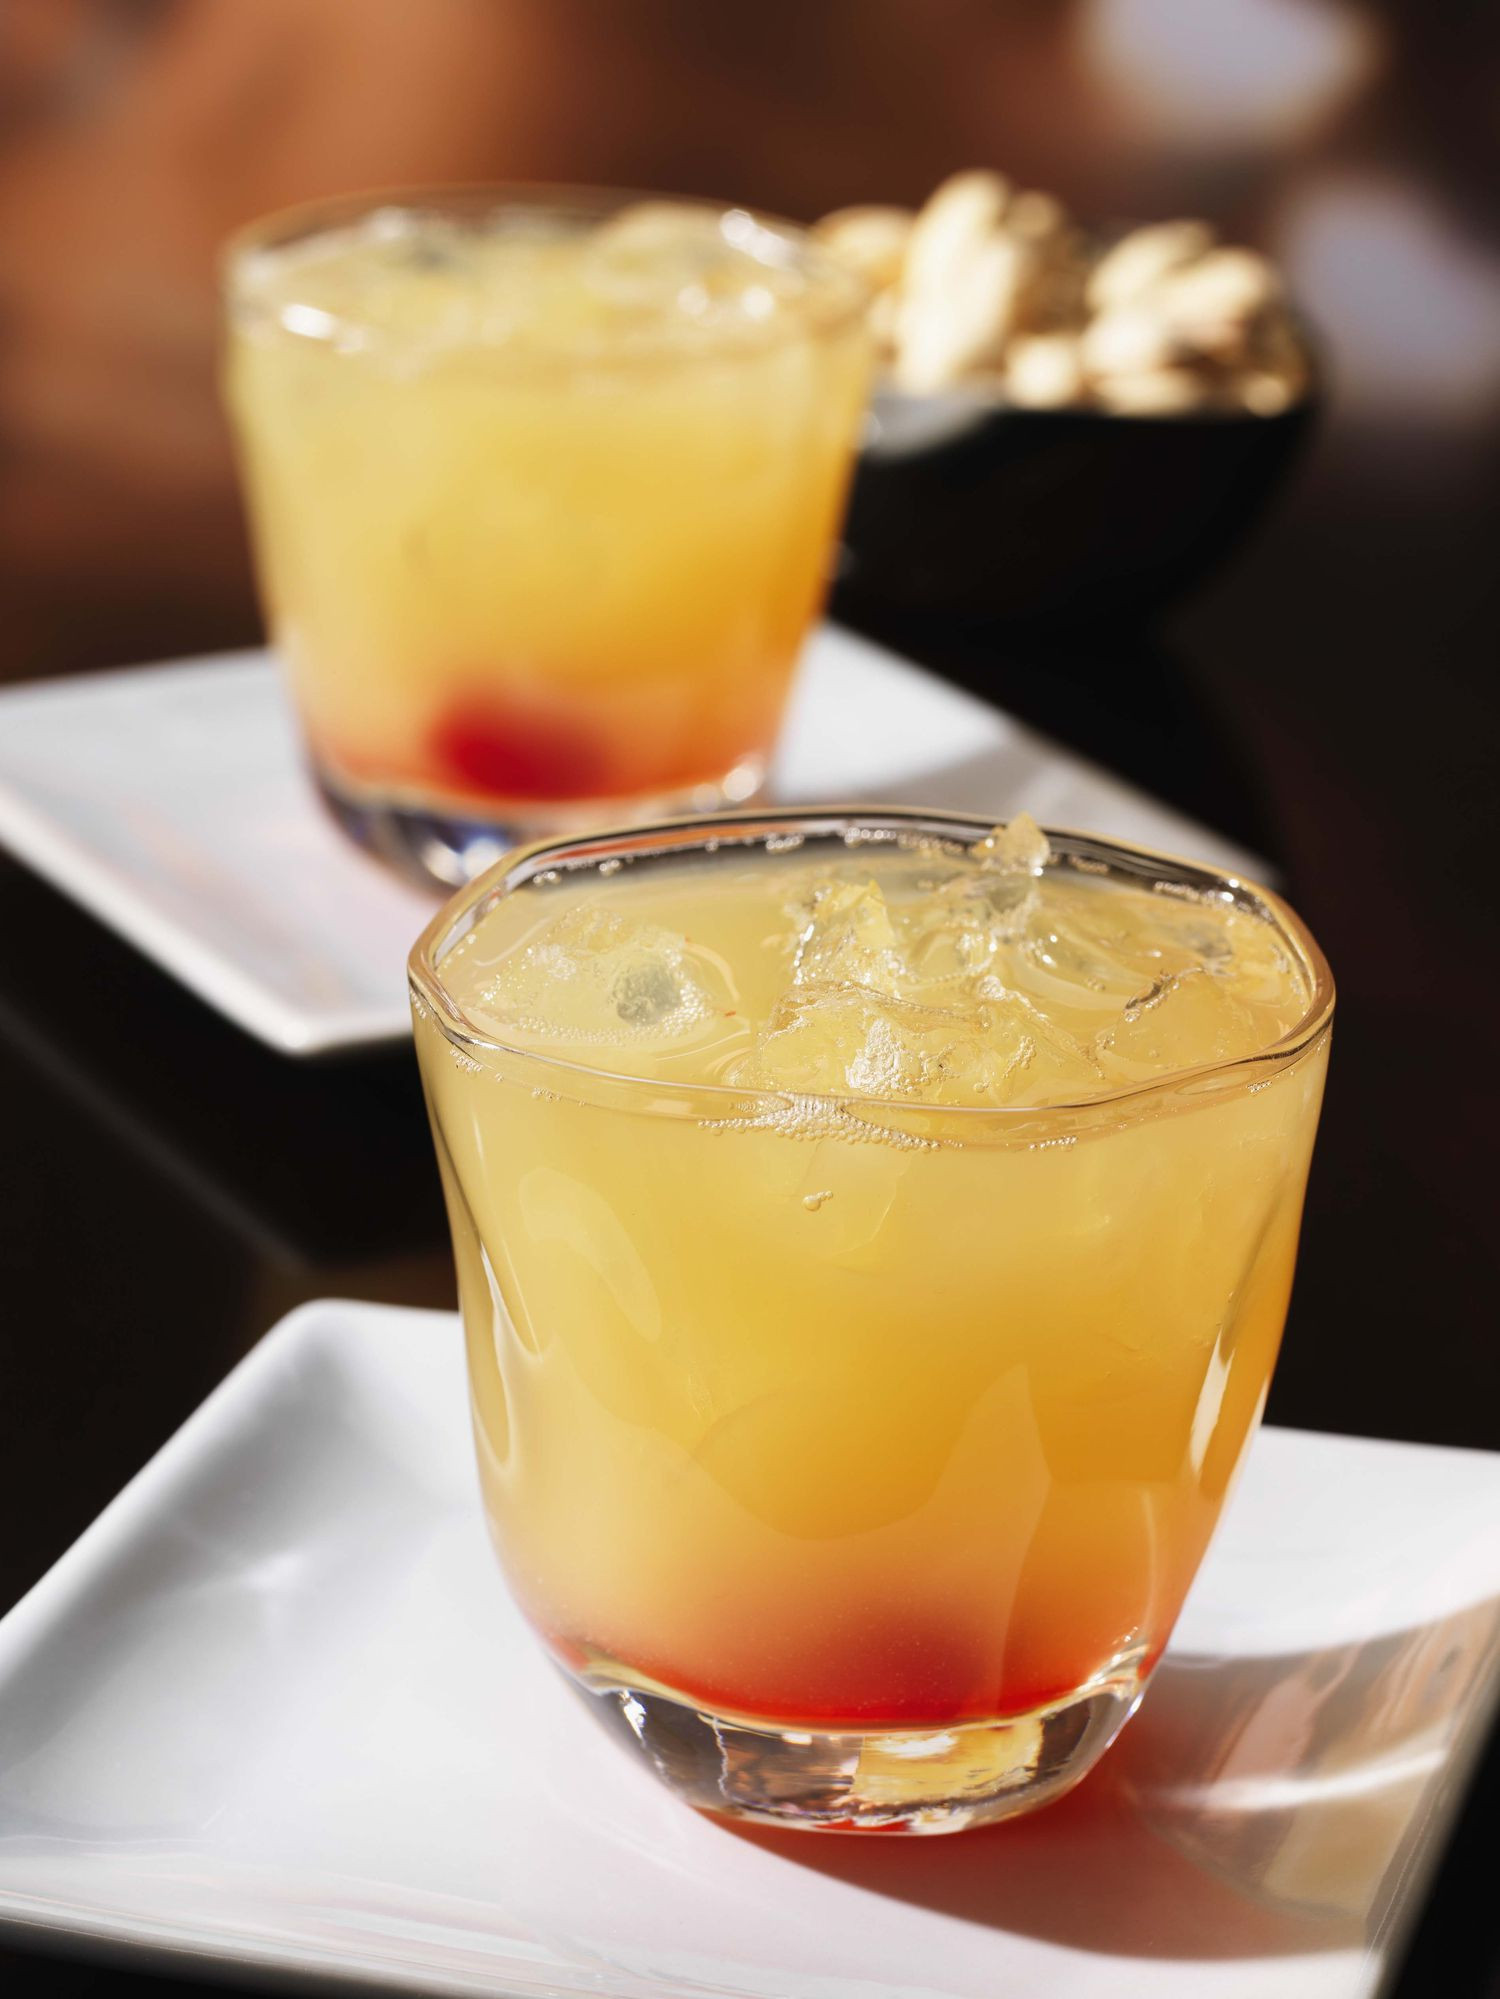 Drinks With Tequila  Tequila Sunrise Cocktail Recipes